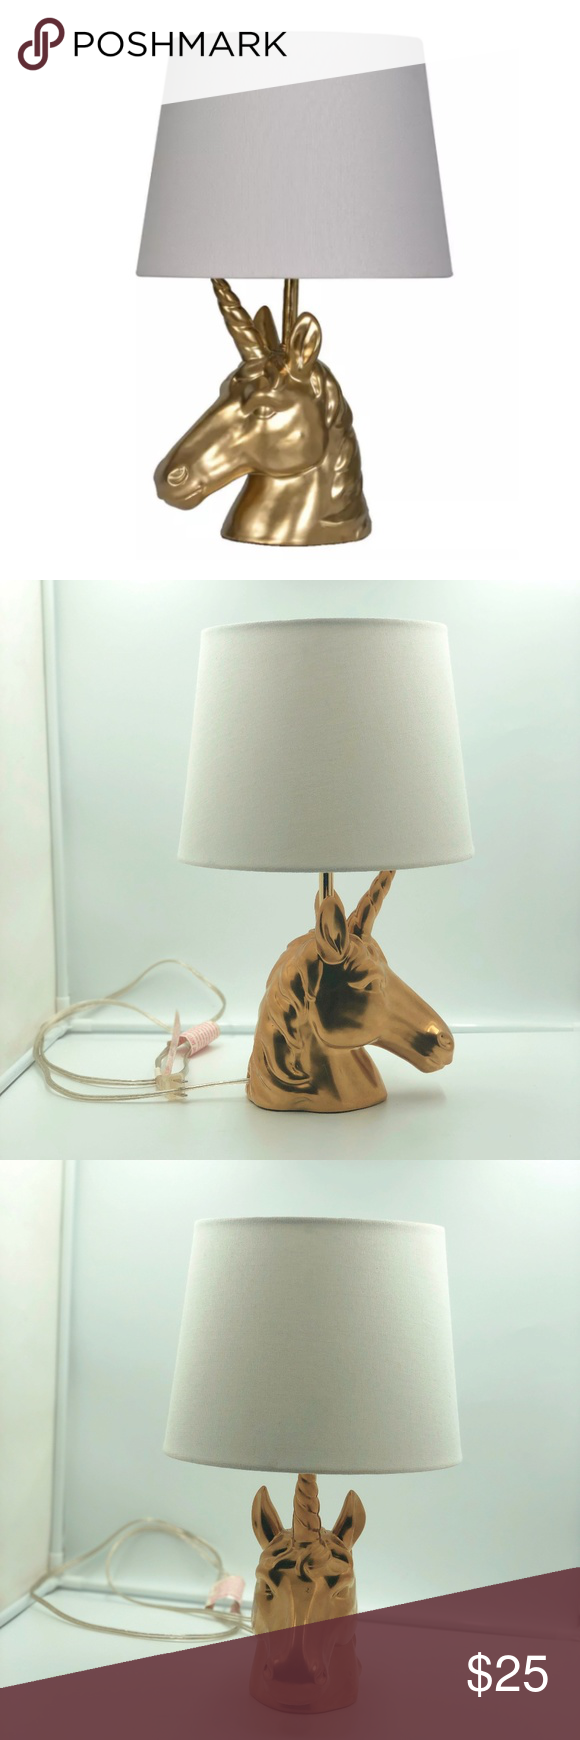 Pillowfort Gold Unicorn Table Lamp with Shade